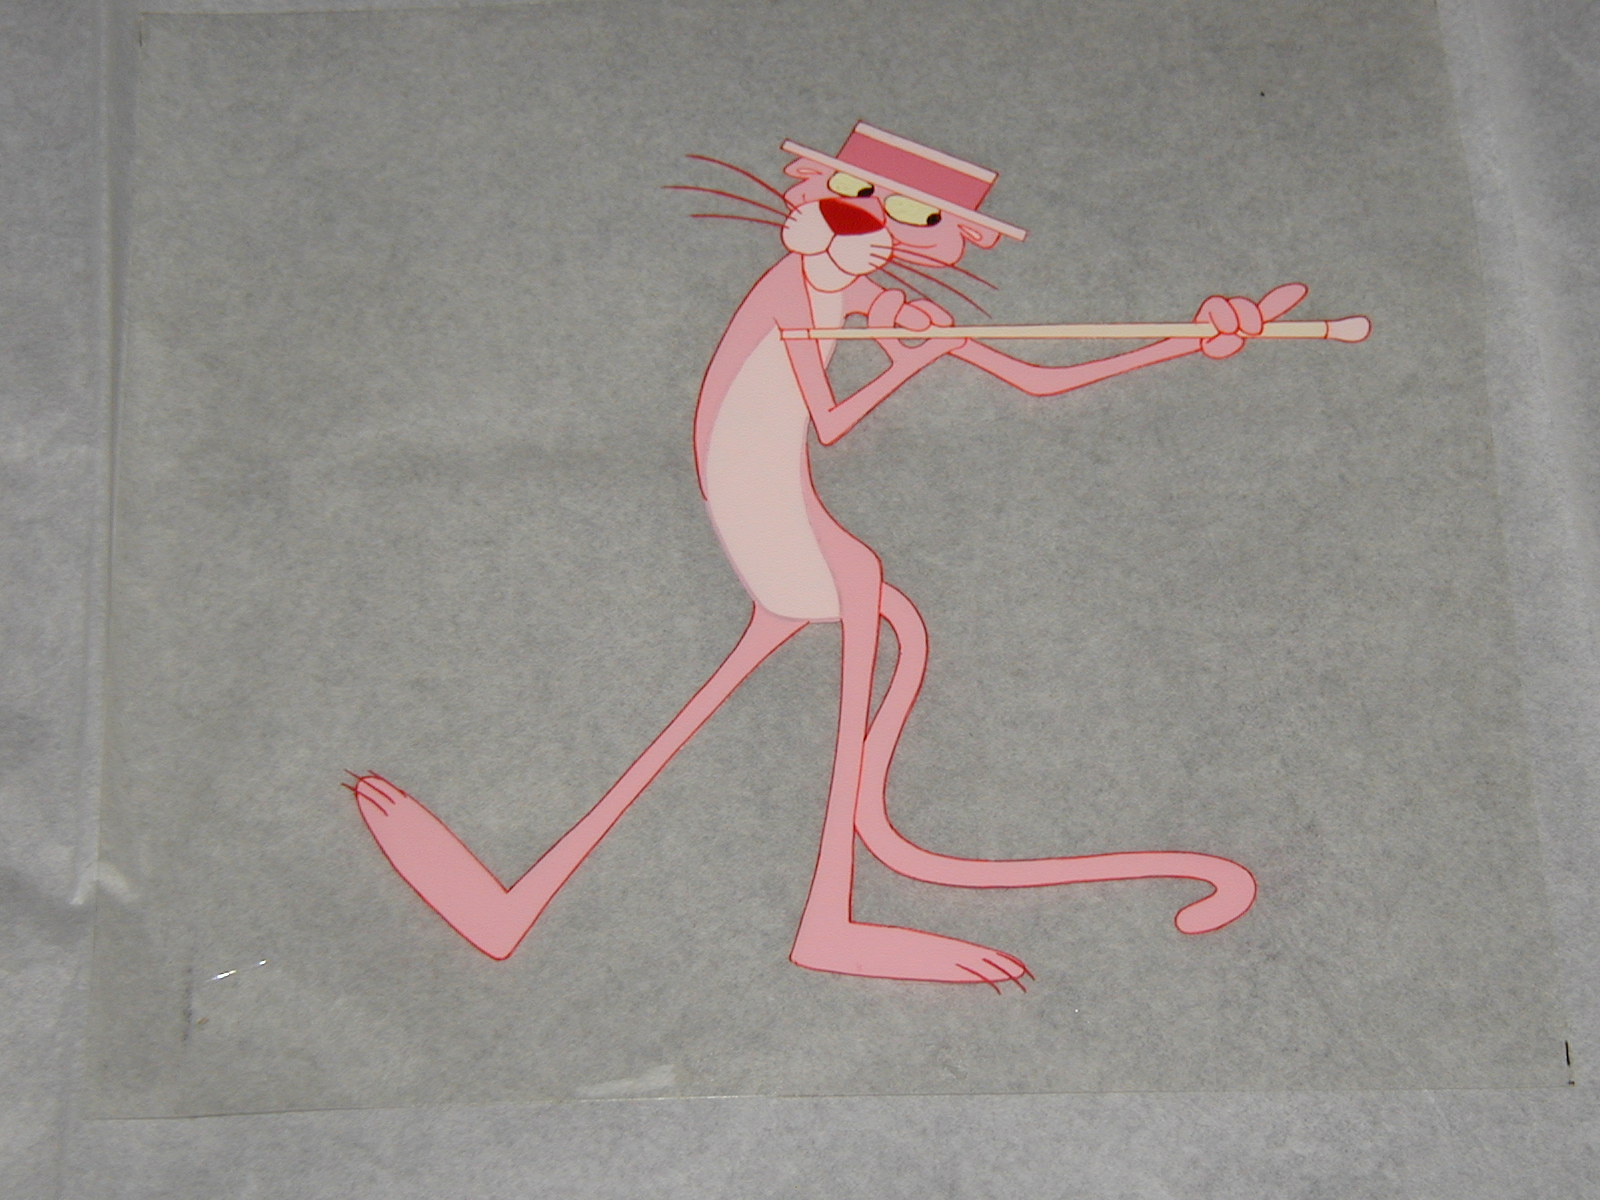 Pink Panther Wallpaper Cell Phone Source Wallpapers For Mobile Phones Drive Cheapusedmotorhome